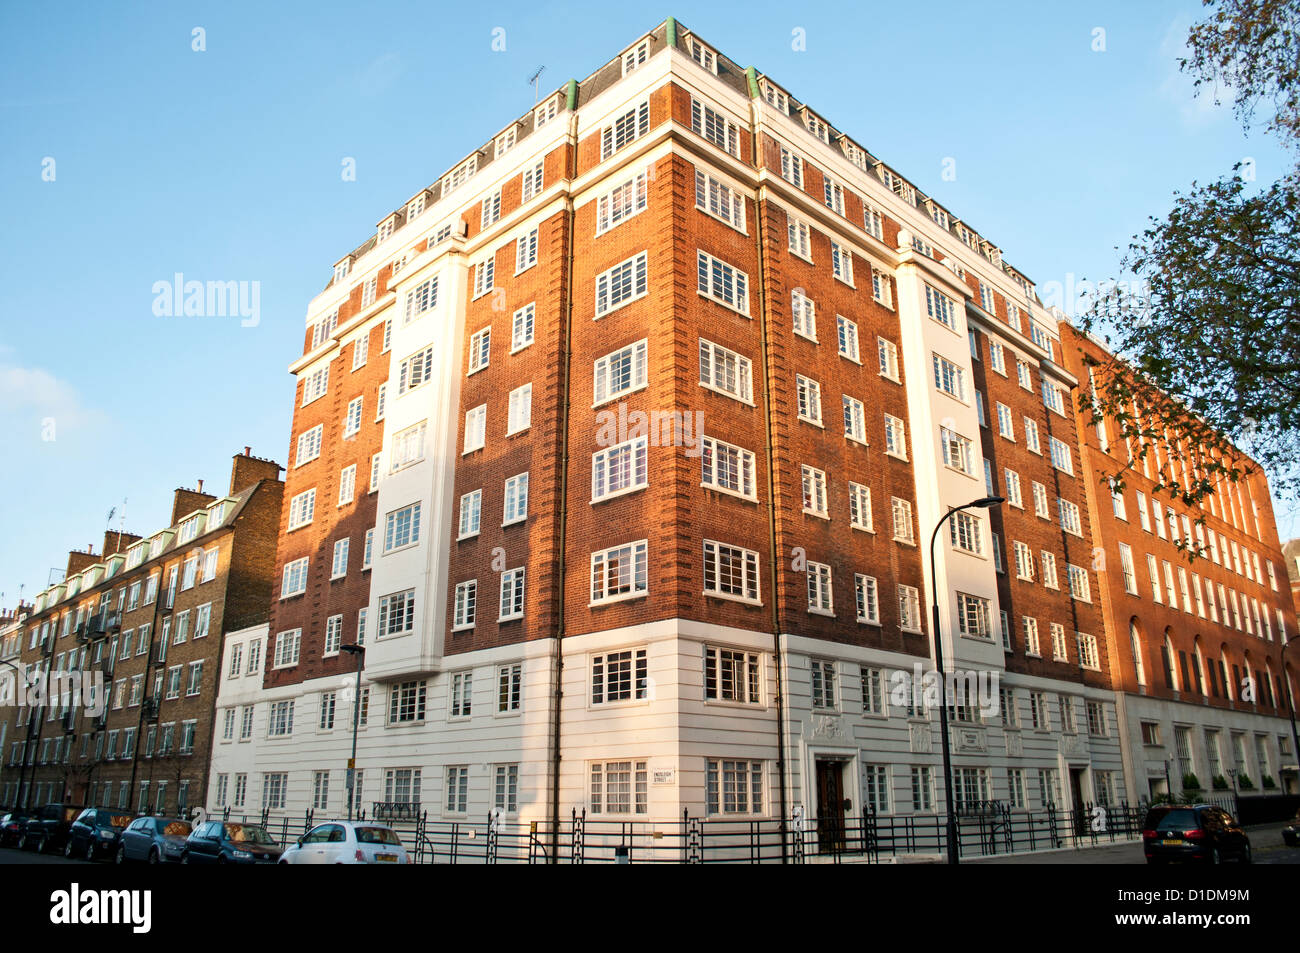 Brick corner house, Tavistock Square, WC1, London, UK - Stock Image